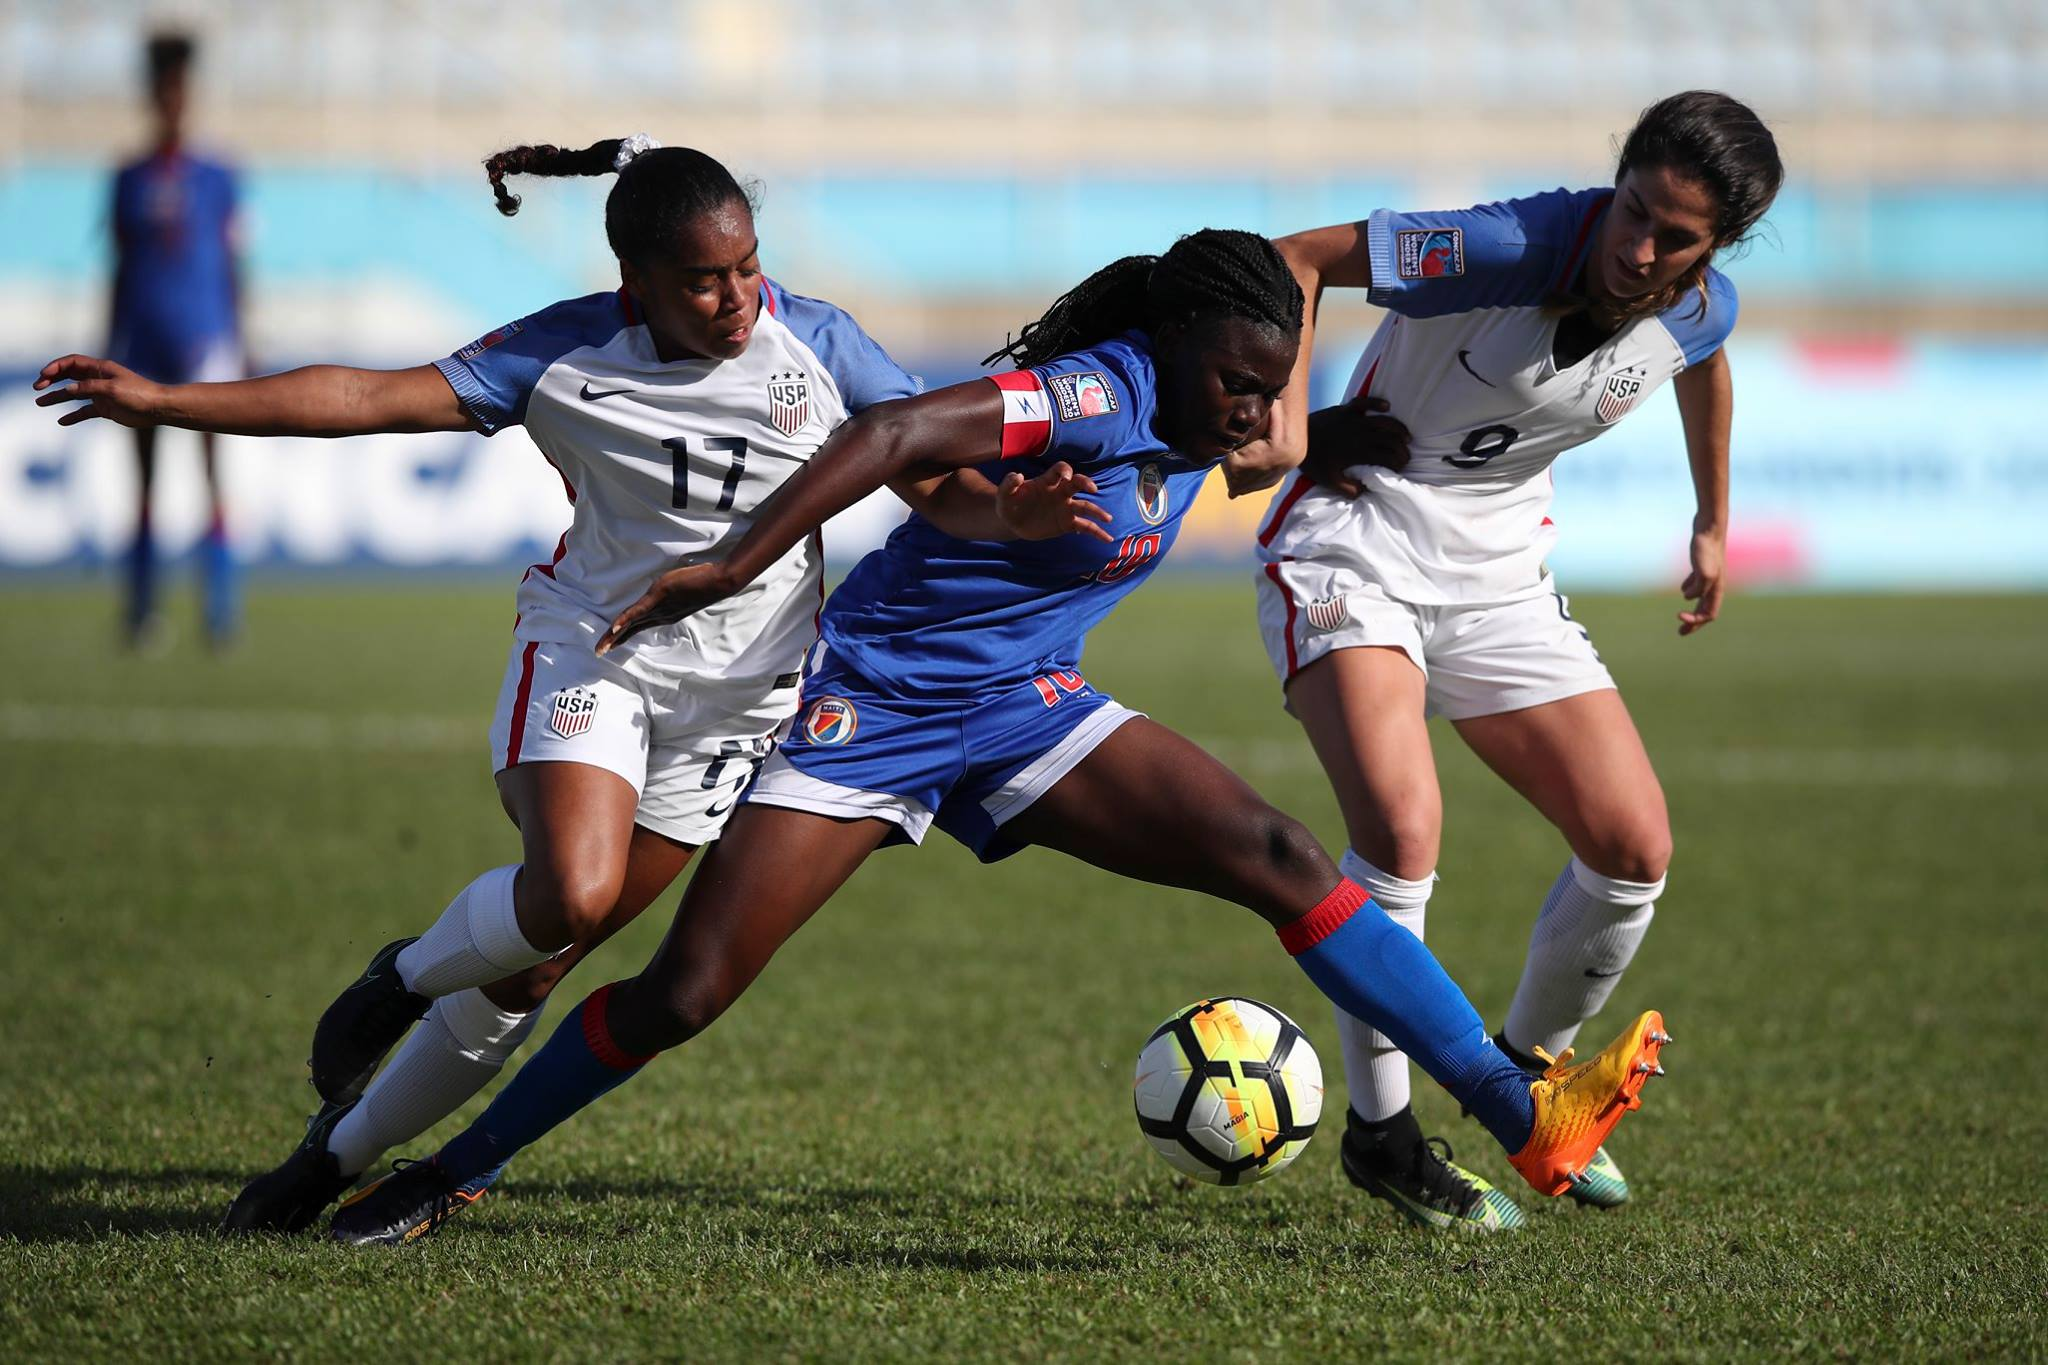 Haïti vs Etats-Unis. Photo: Concacaf